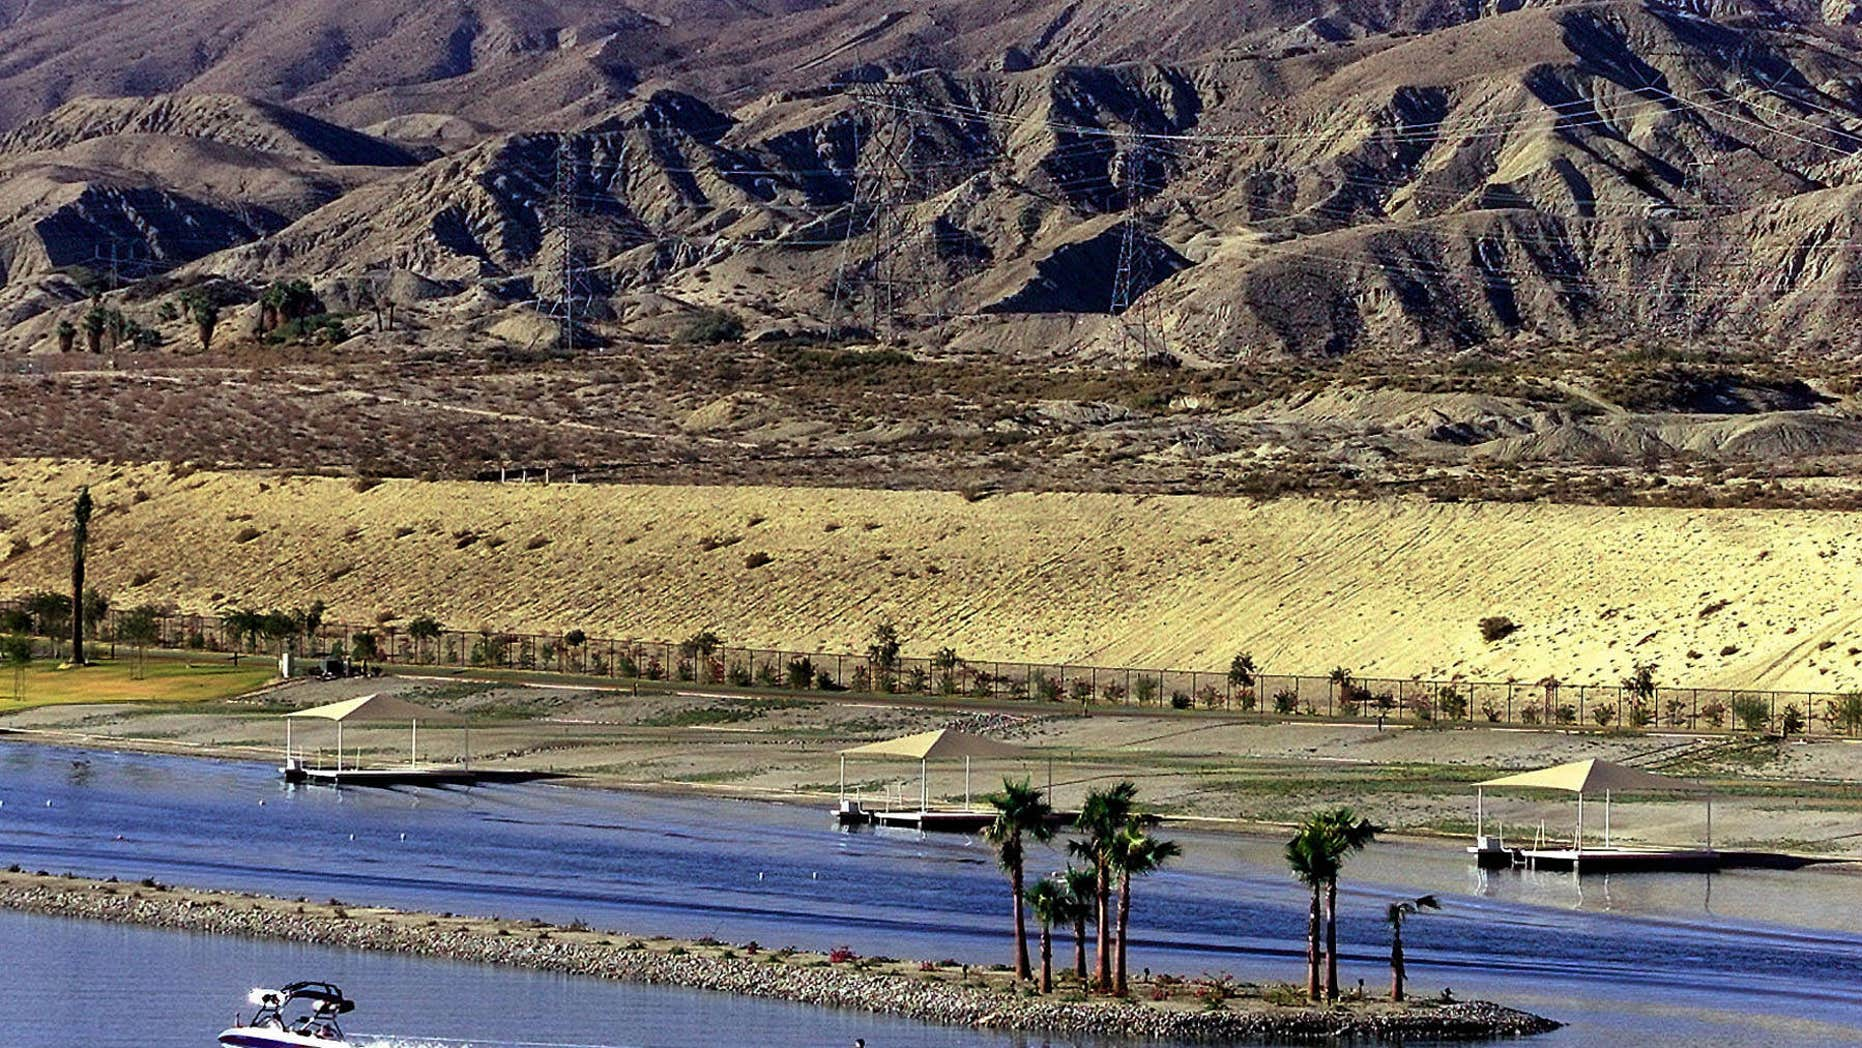 Oct. 17, 2000: A water skier at ShadowLake Estates passes below the San Gorgonio Mountains near Indio, Calif. California lawmakers and an array of interest groups are ramping up effort to designate four new national monuments in the state.